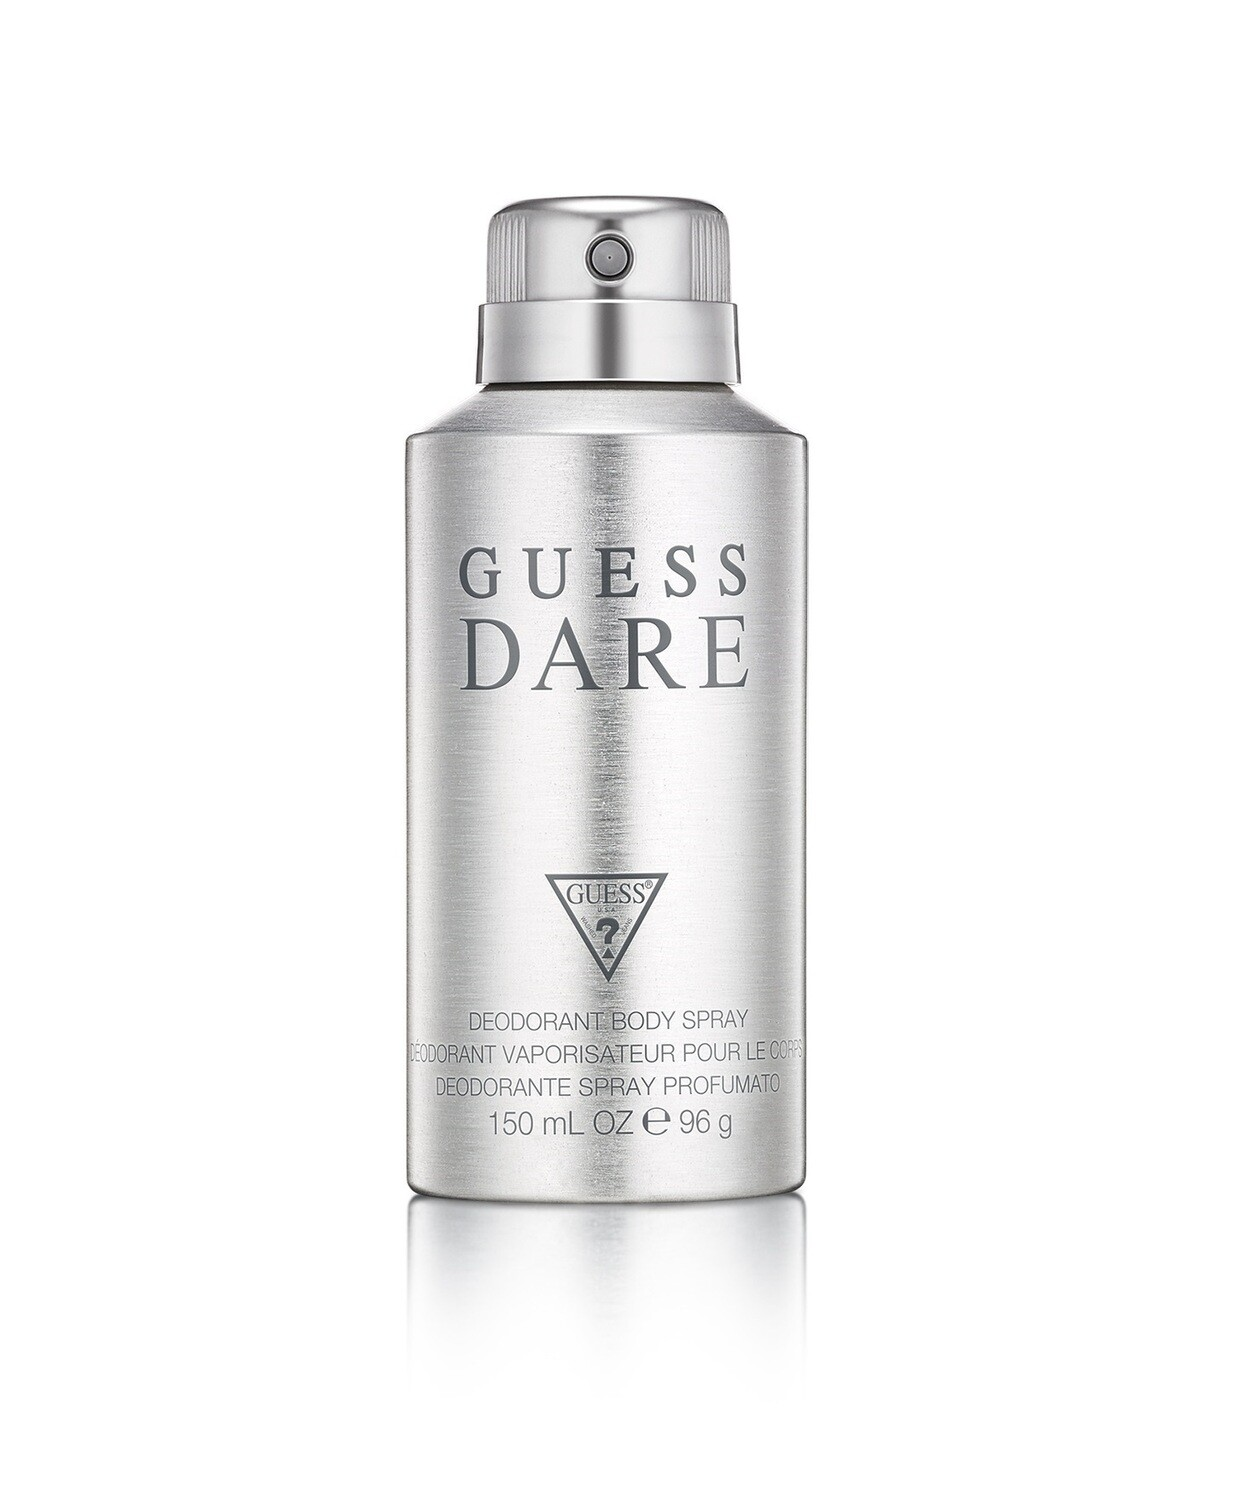 Guess Dare Homme Deodorant Spray 96Gm